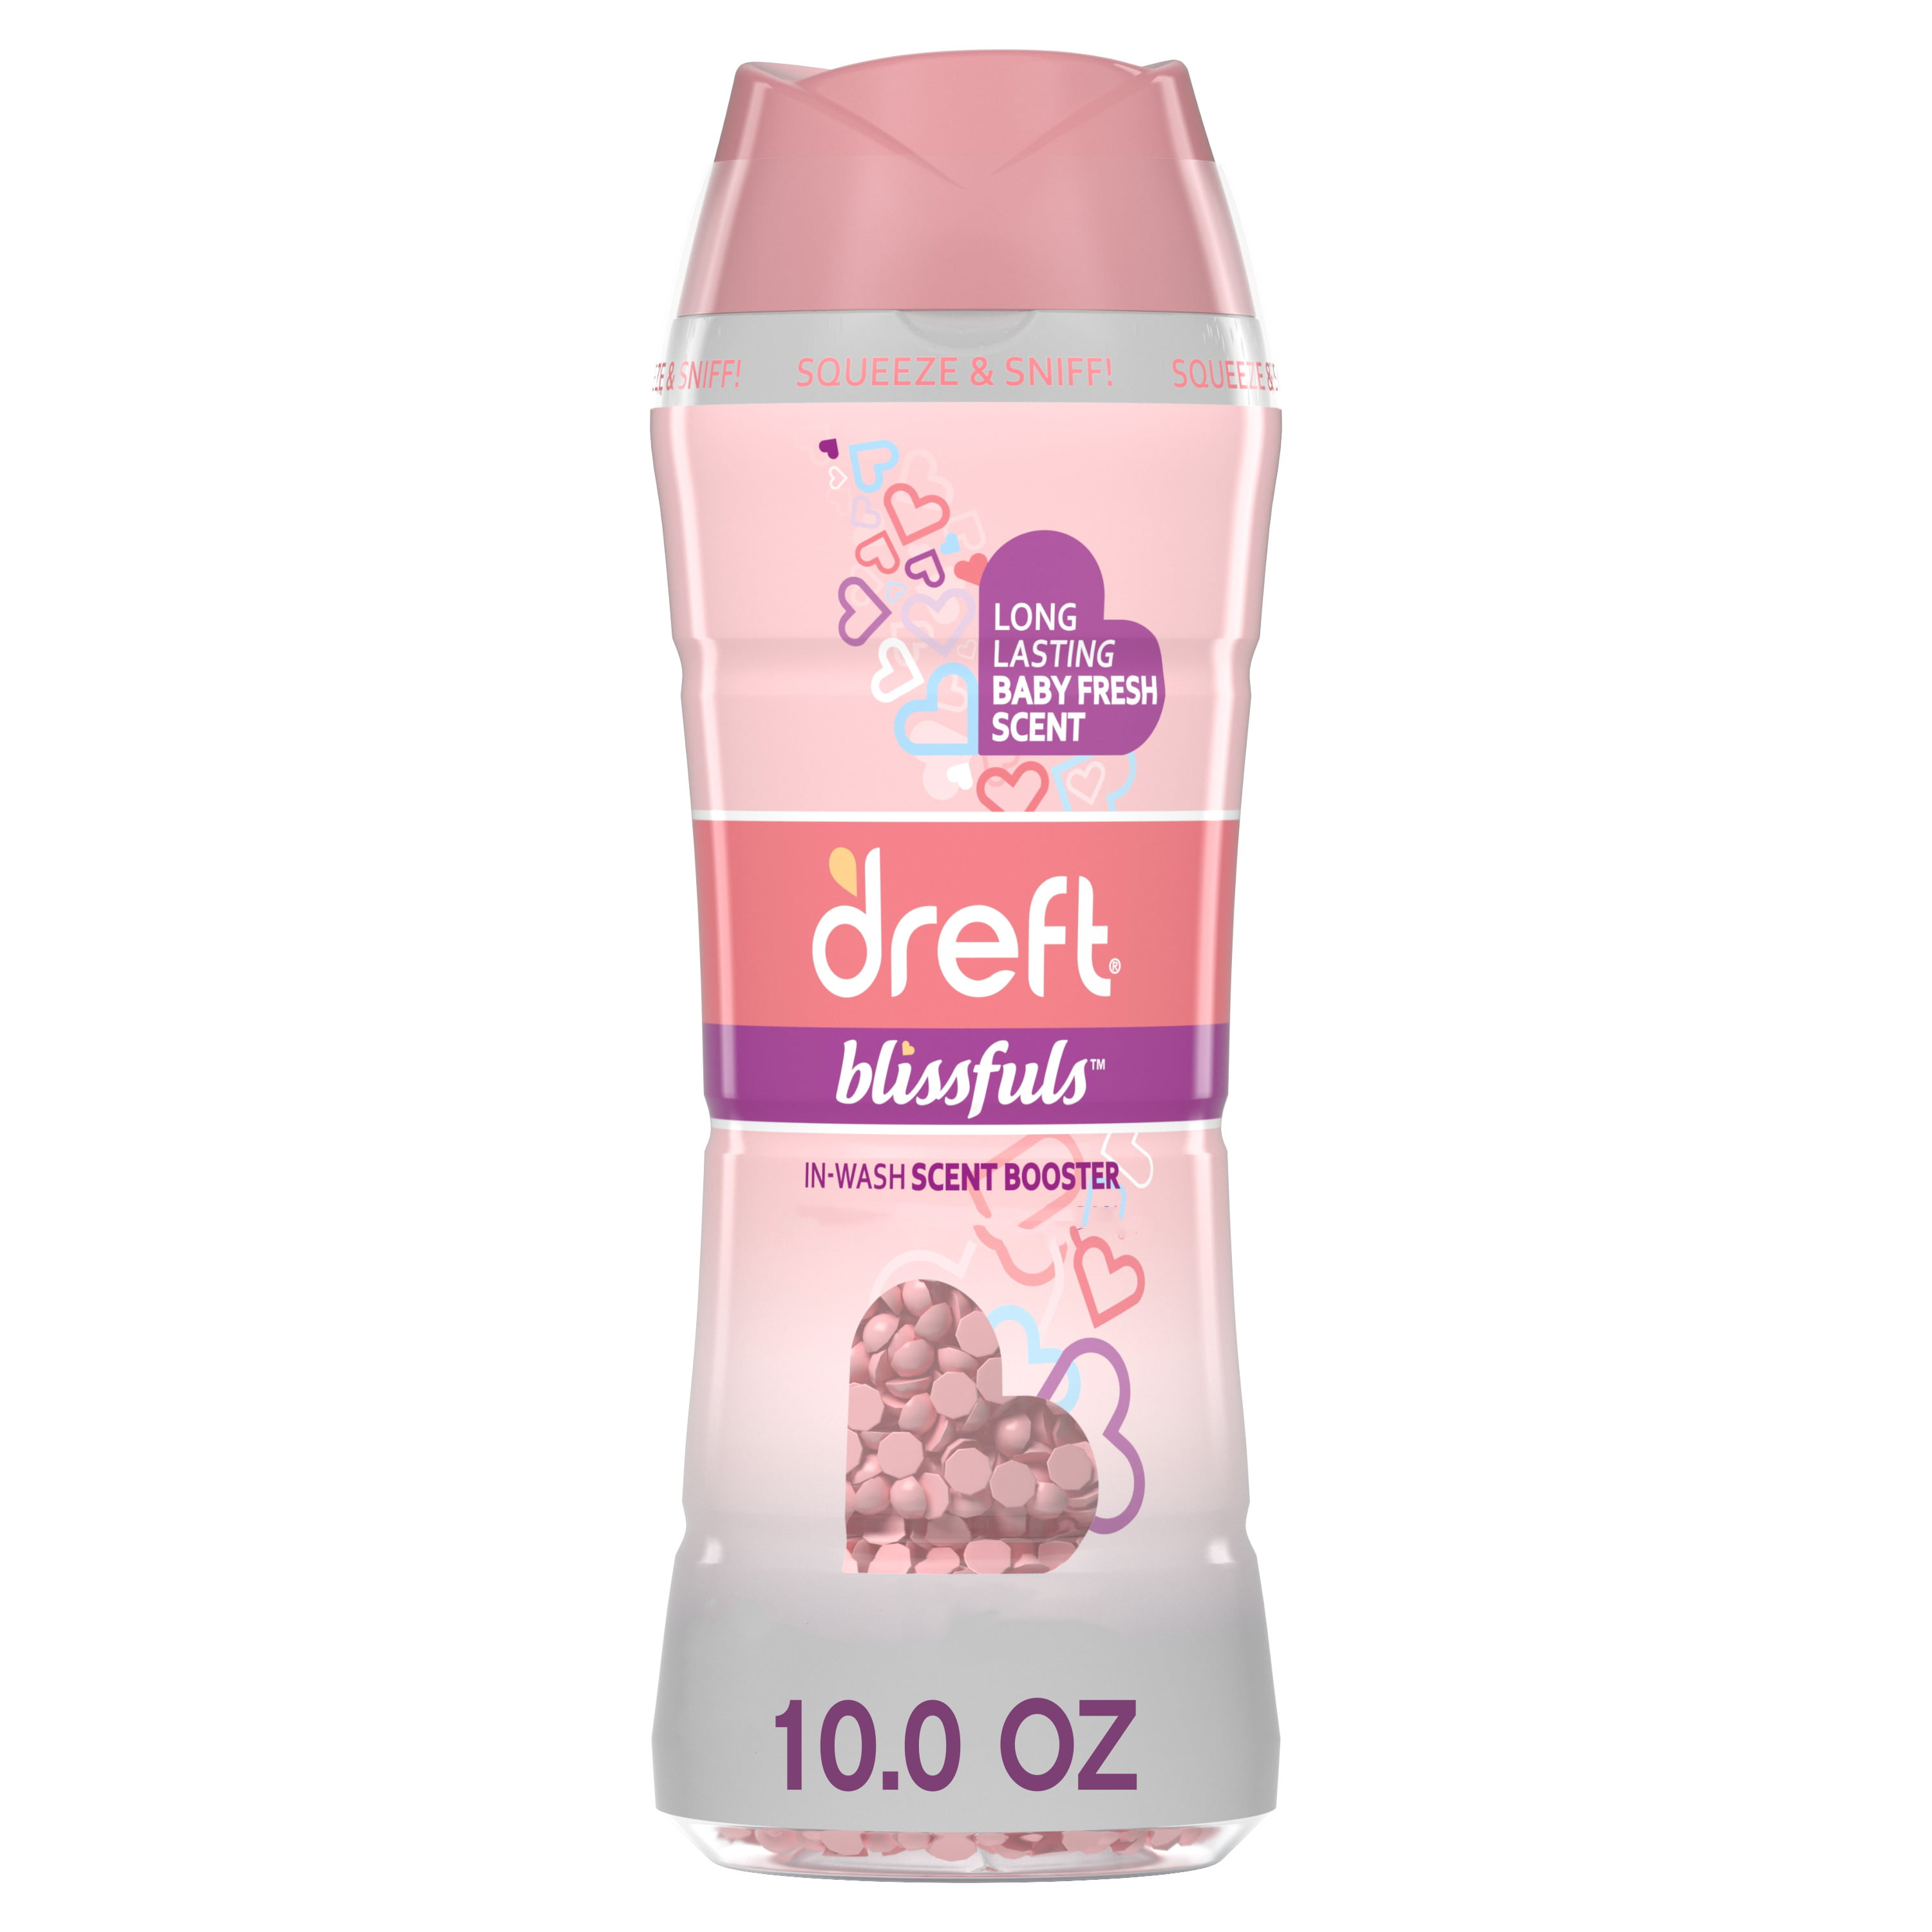 Dreft Blissfuls In-Wash Scent Booster Beads, Baby Fresh, 10 oz